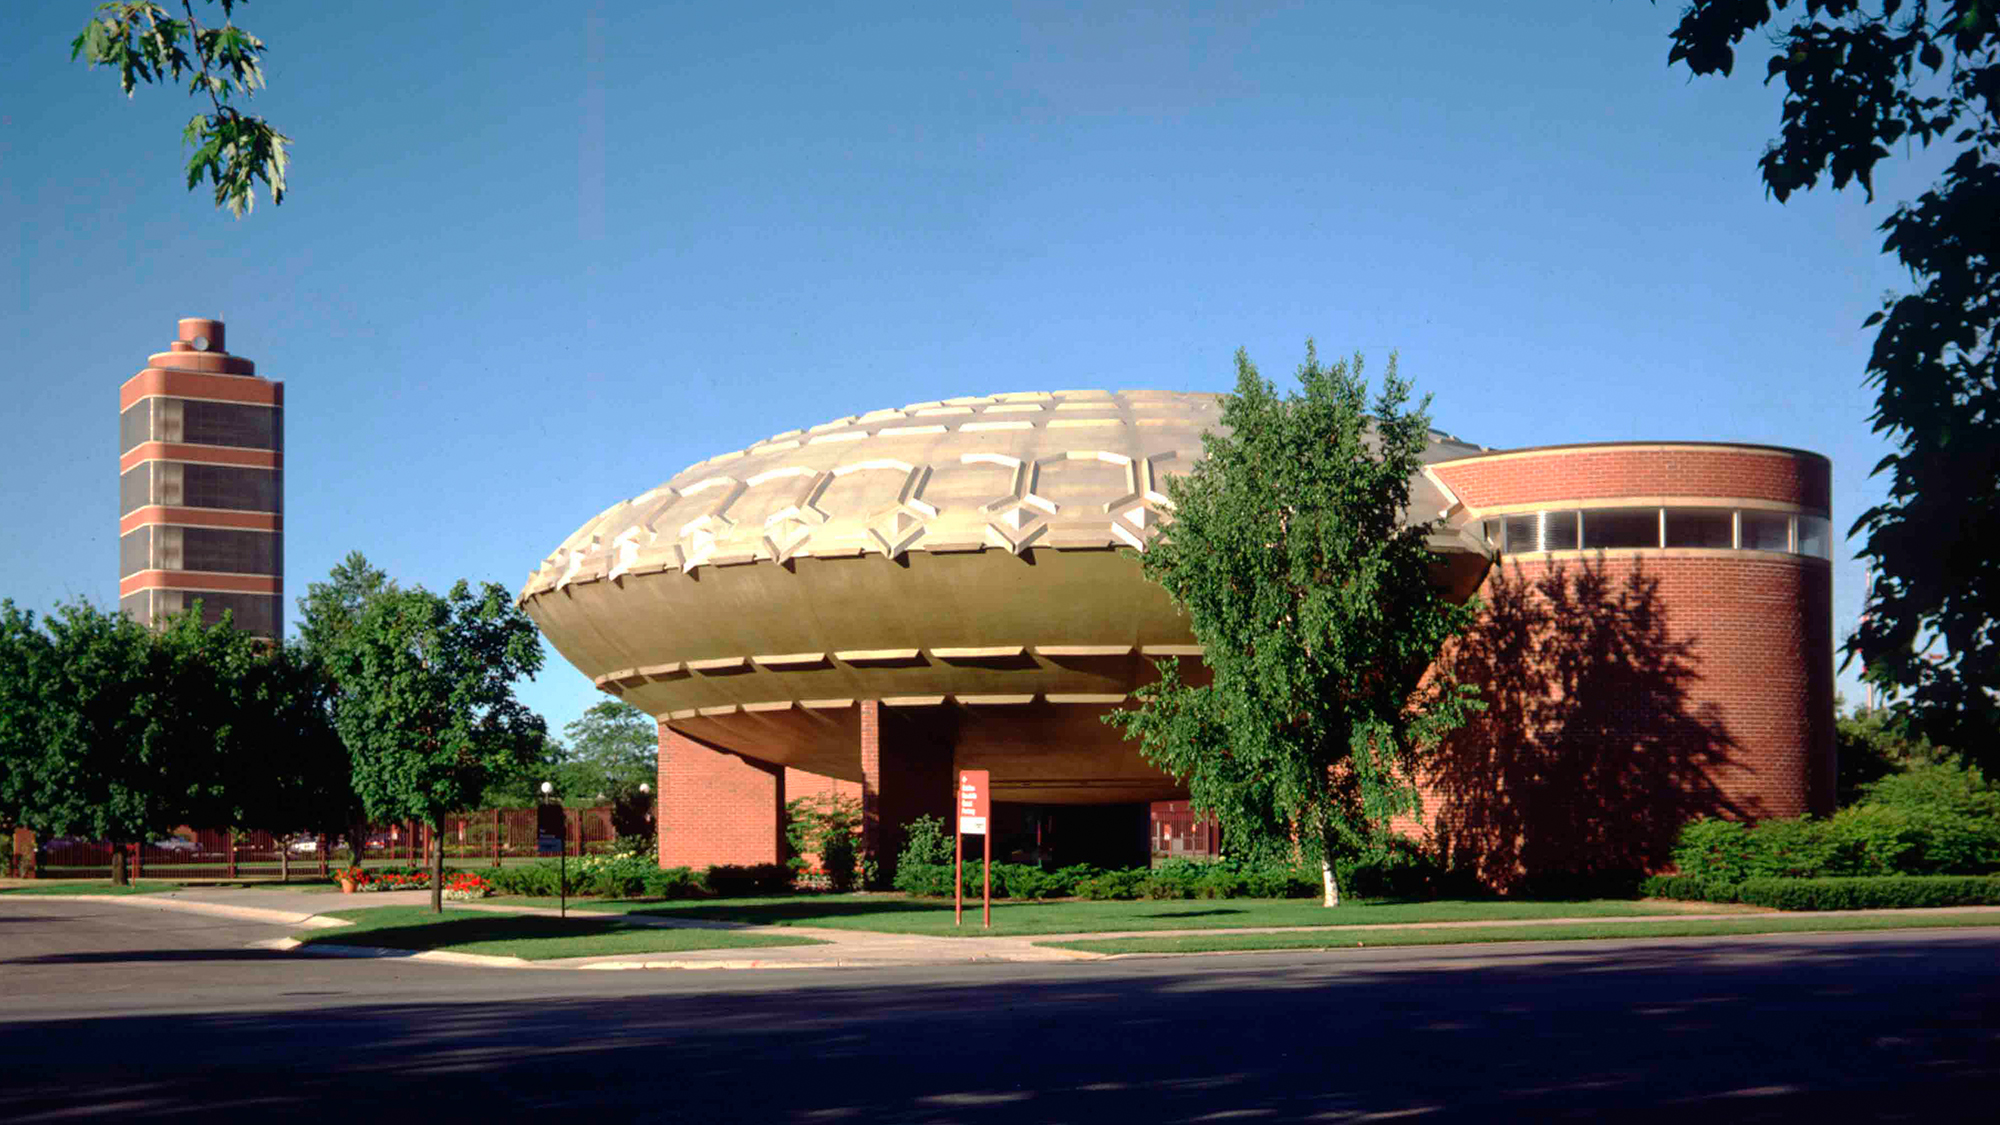 The Golden Rondelle Theater sits at the entrance to our global headquarters campus.